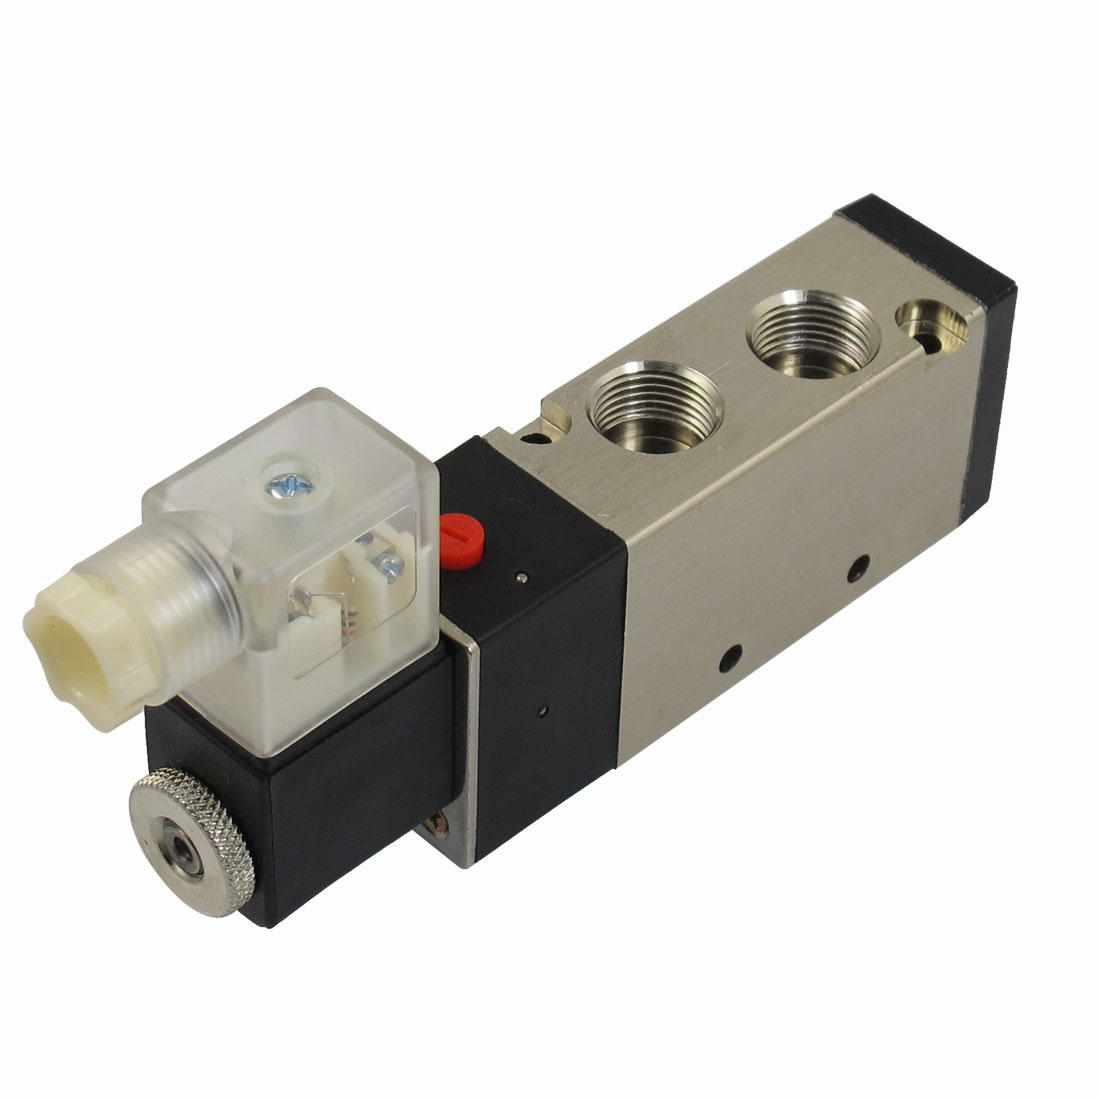 "DC 24V 125mA 3W 2 Position 5 Way Pneumatic Electromagnetic Solenoid Valve G1/4"" Exhaust"